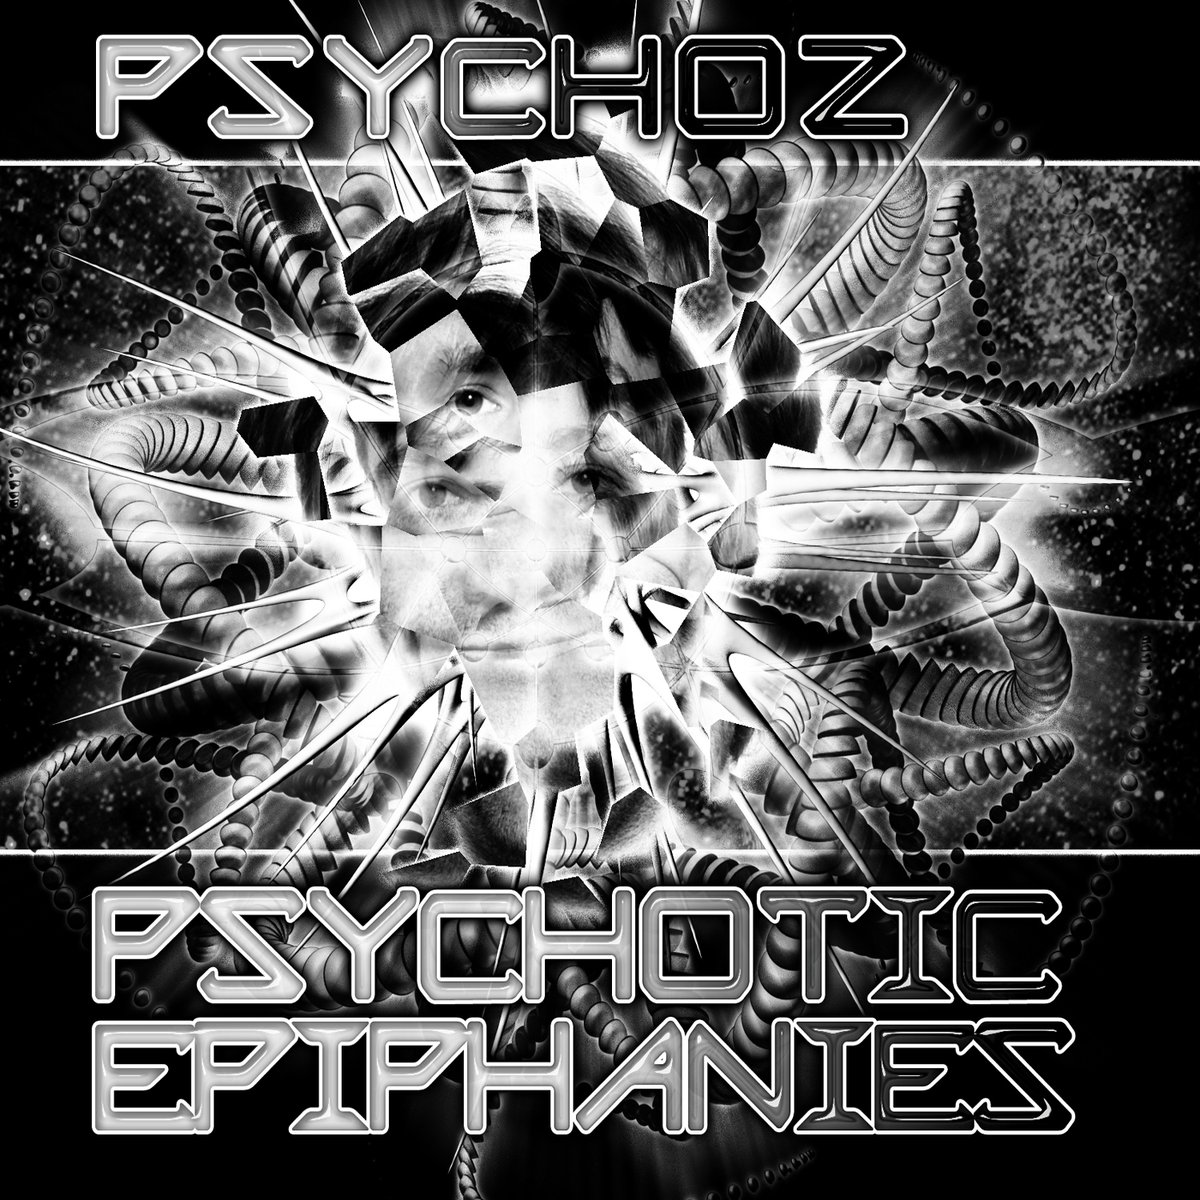 Psychoz - During As Instead Of @ 'Psychotic Epiphanies' album (electronic, goa)